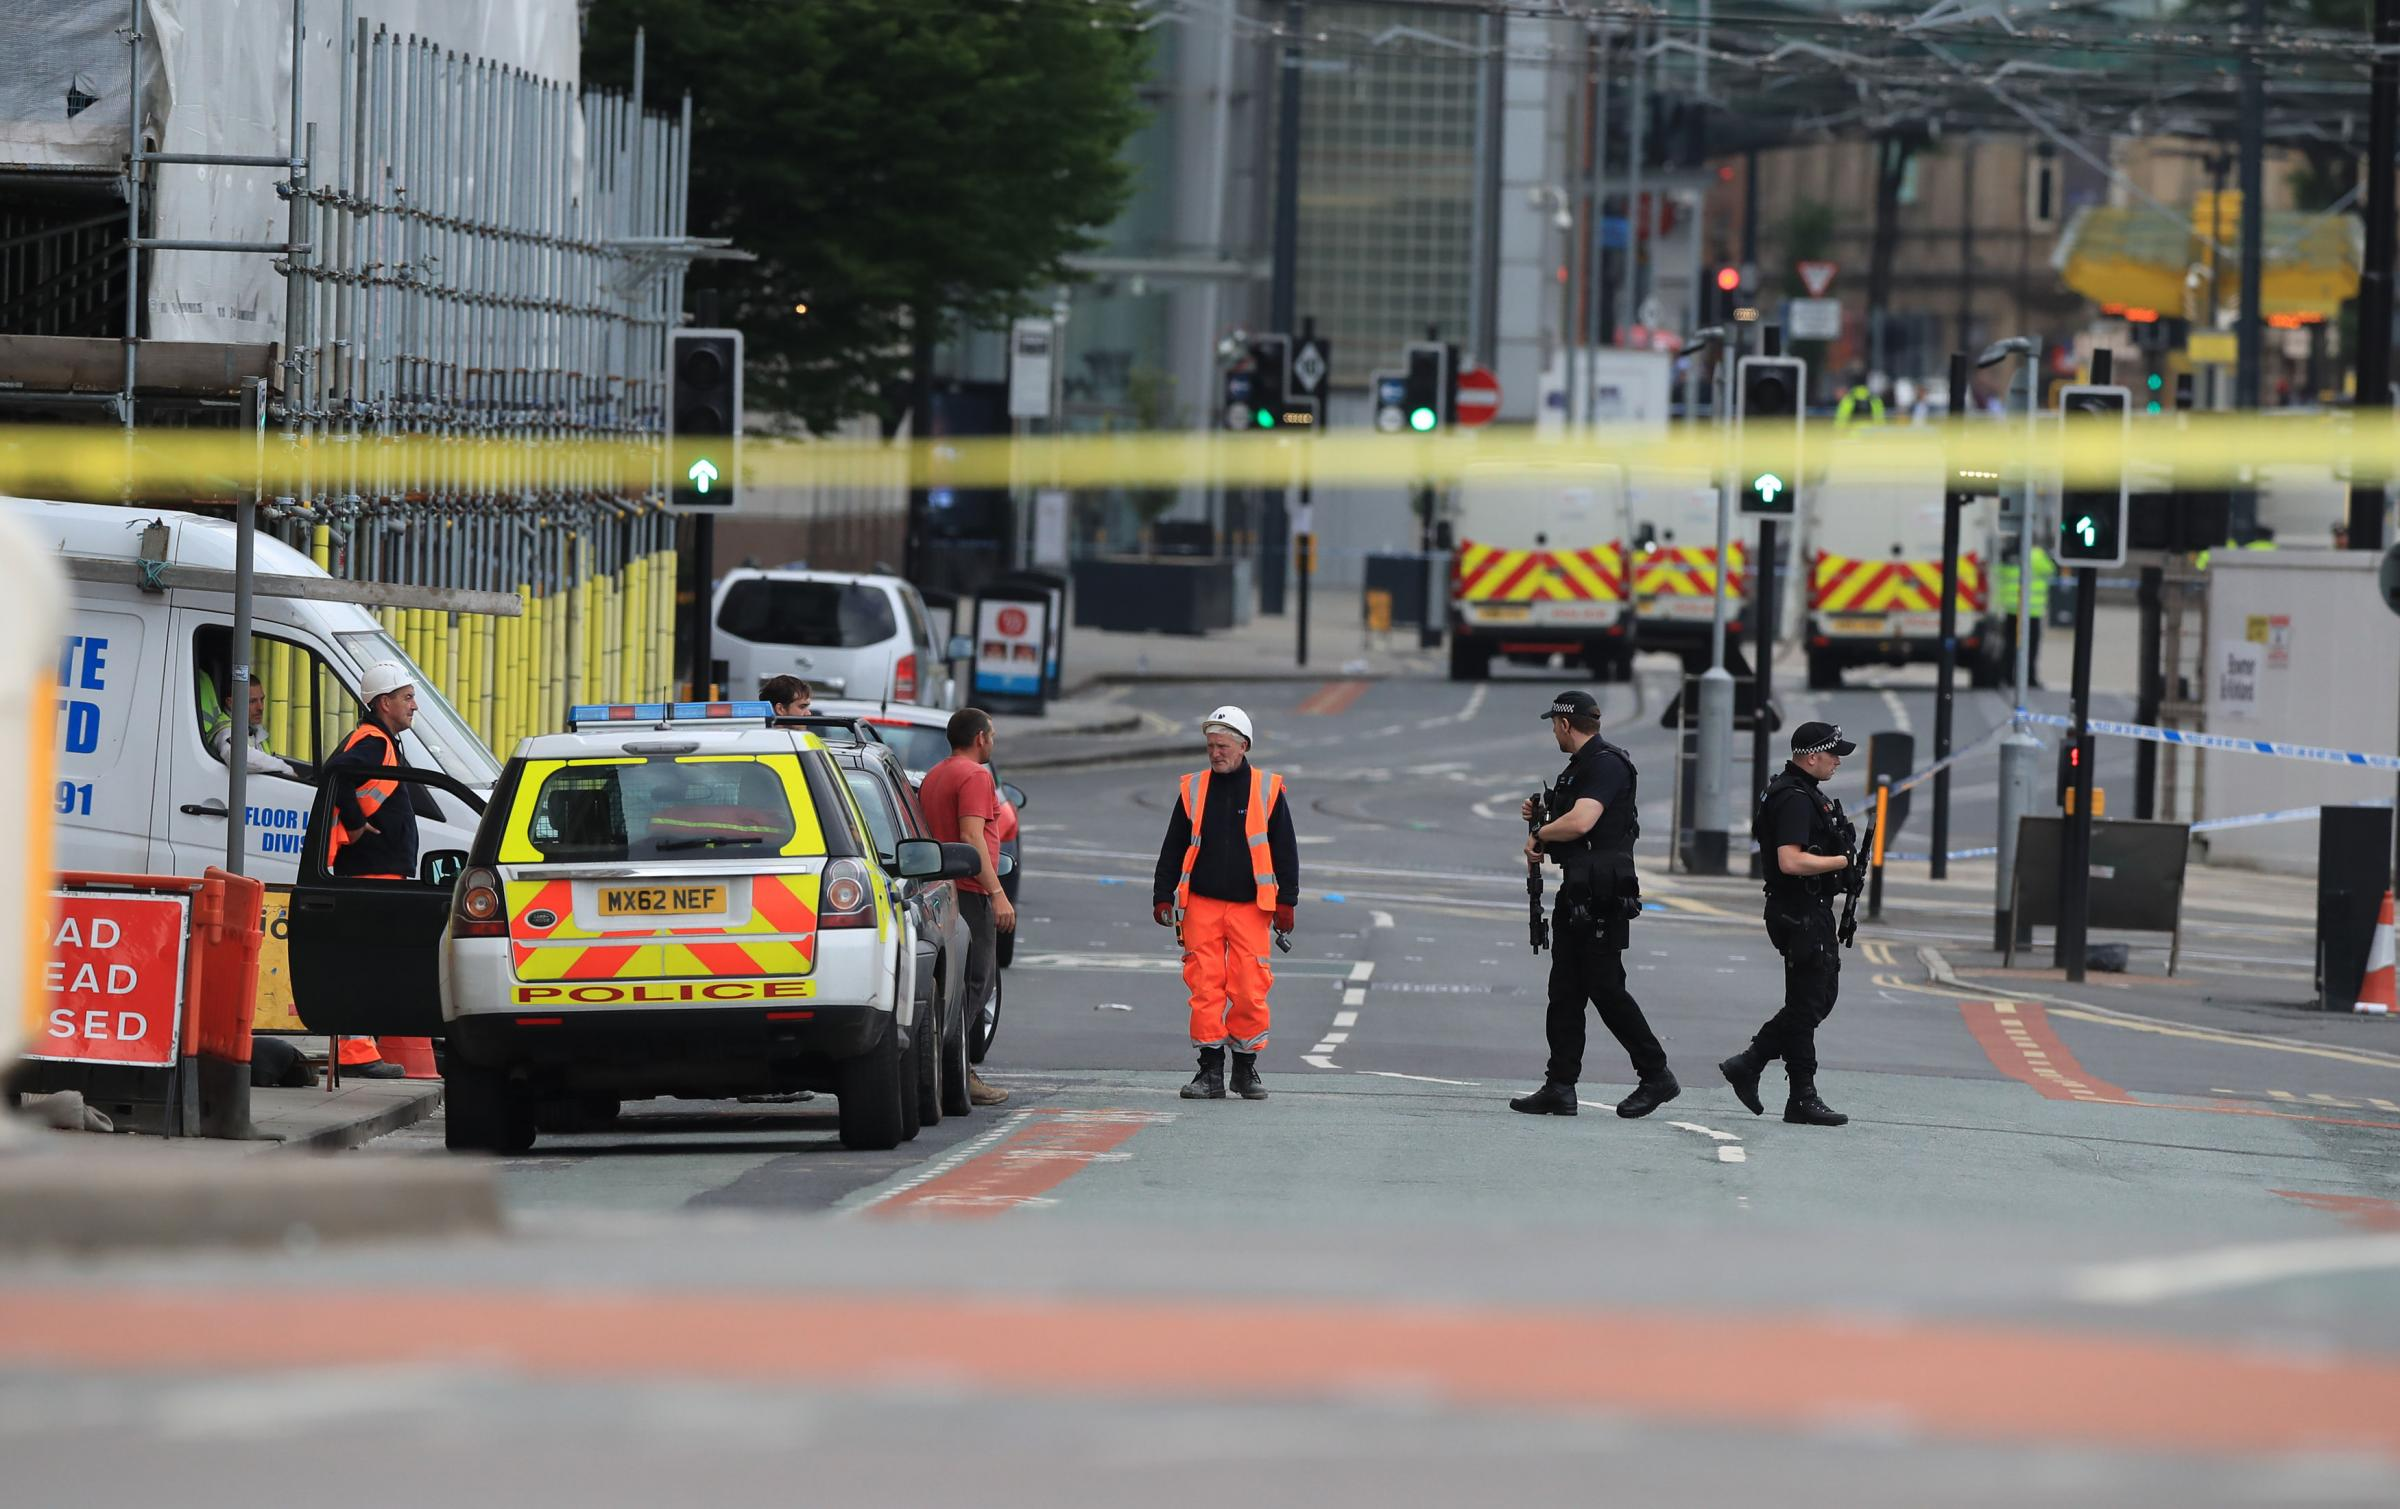 The scene of the attack at the Manchester Arena